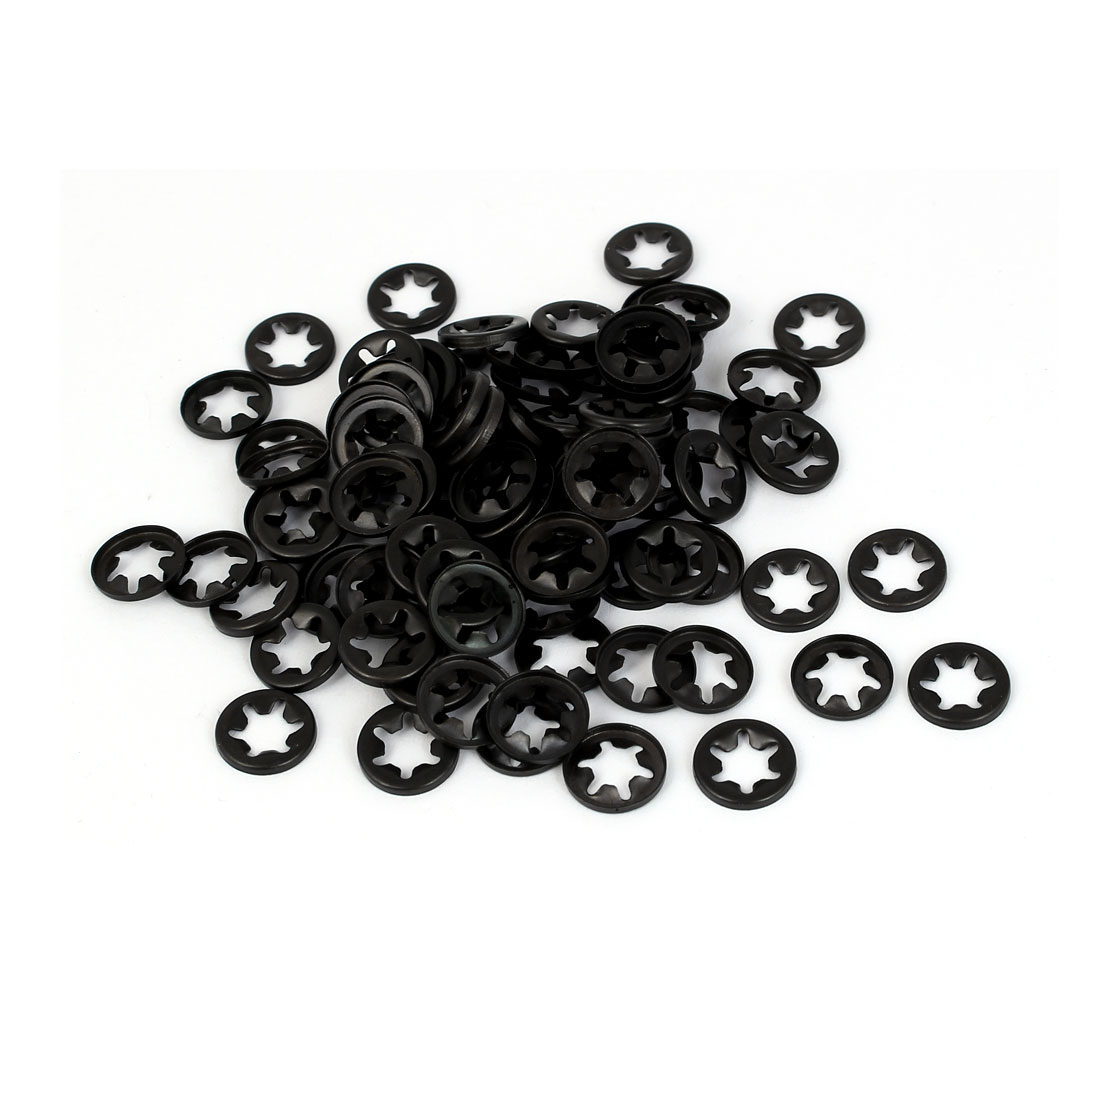 7mm Inner Dia Starlock Push on Fasteners Locking Washers Clips 100 Pcs